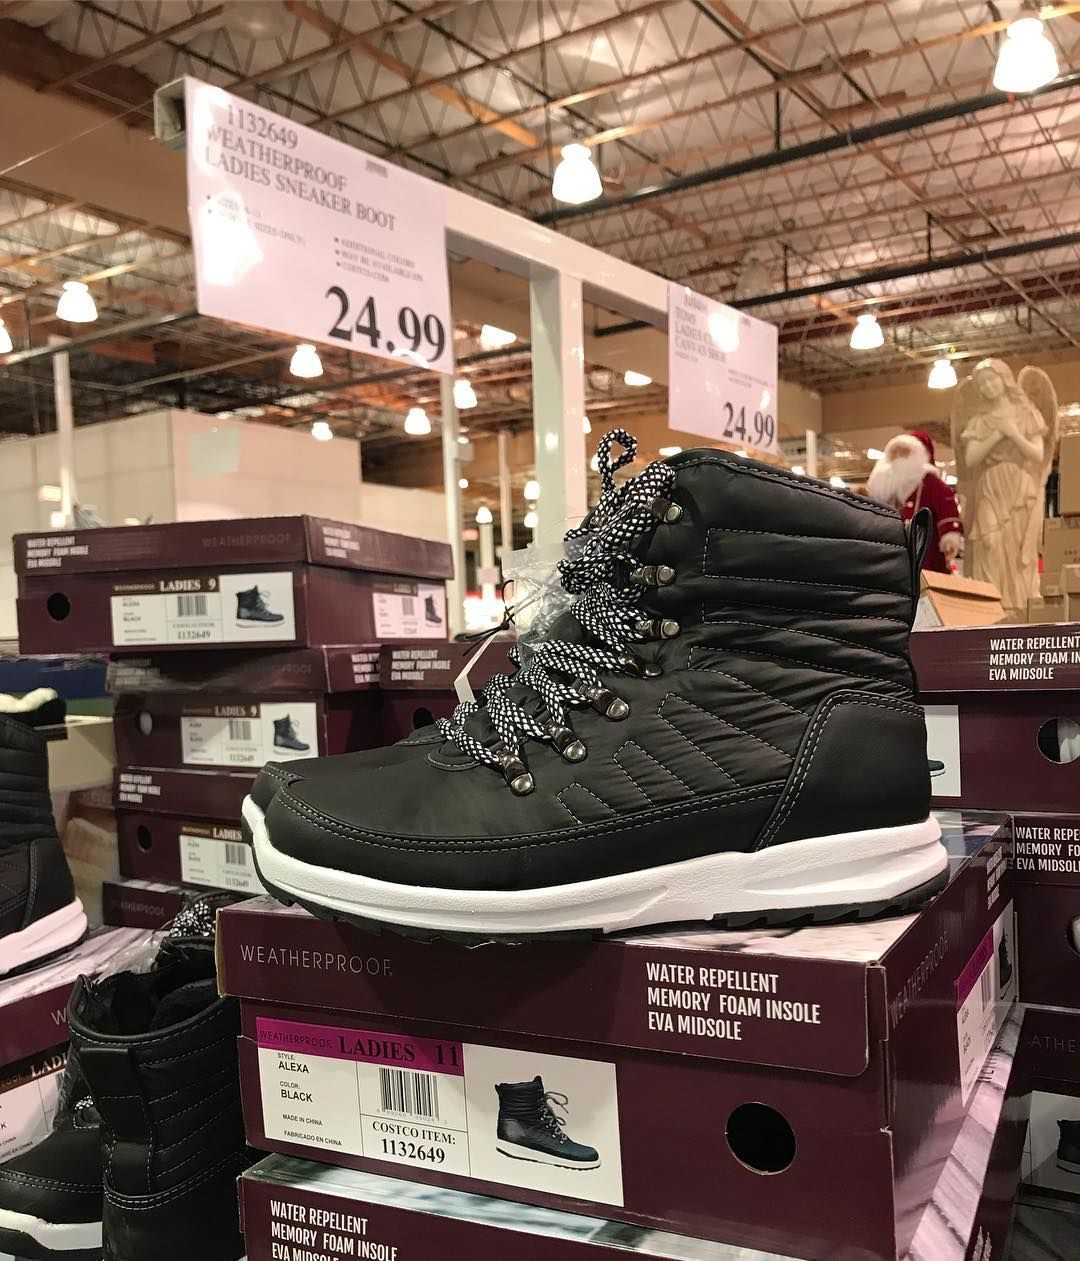 7e214301730 yes please! #weatherproof ladies #sneaker #boots! Only $24.99 ...